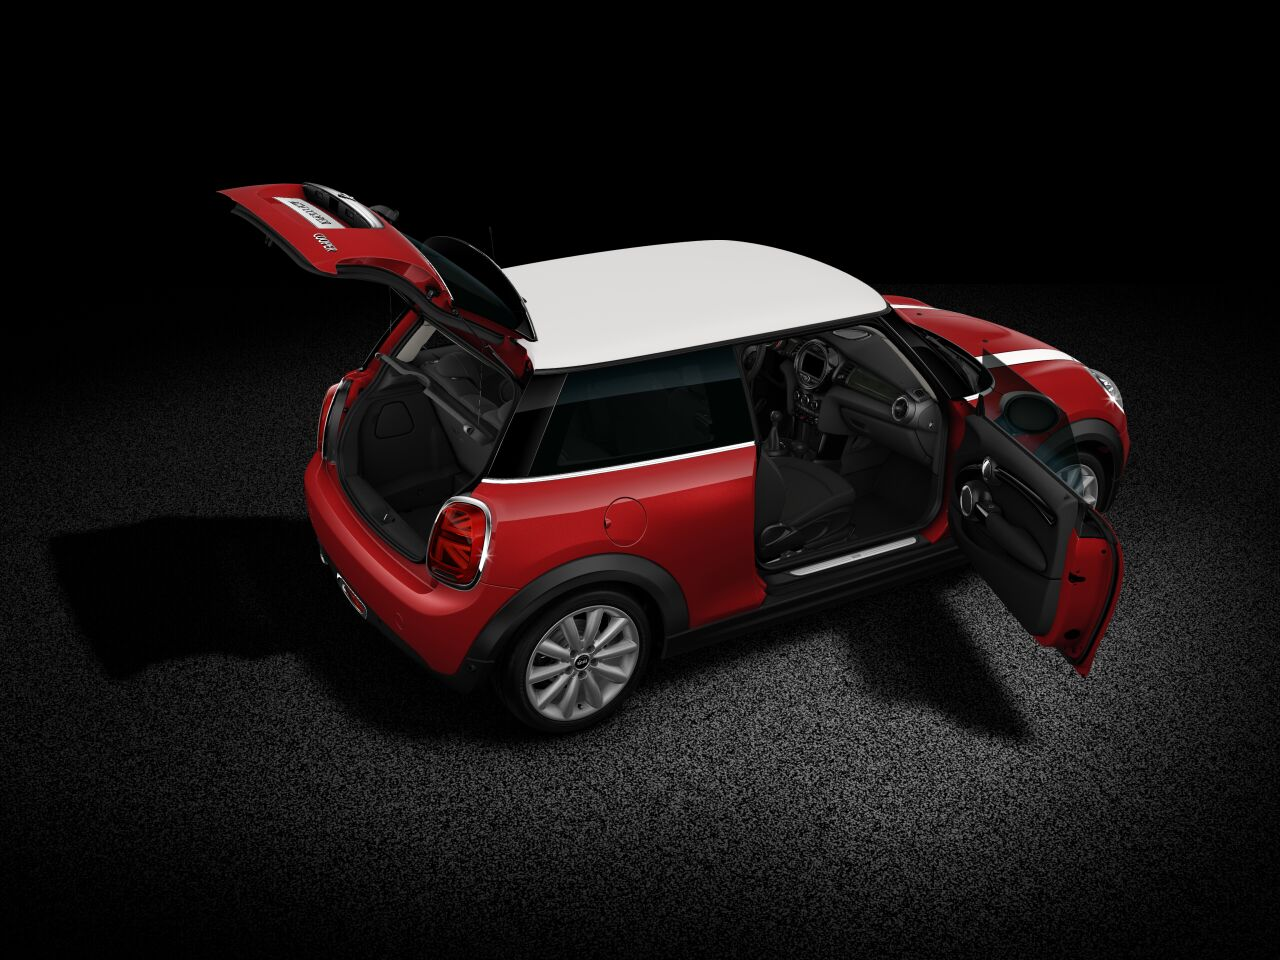 MINI Cooper 3 Door full open body profile